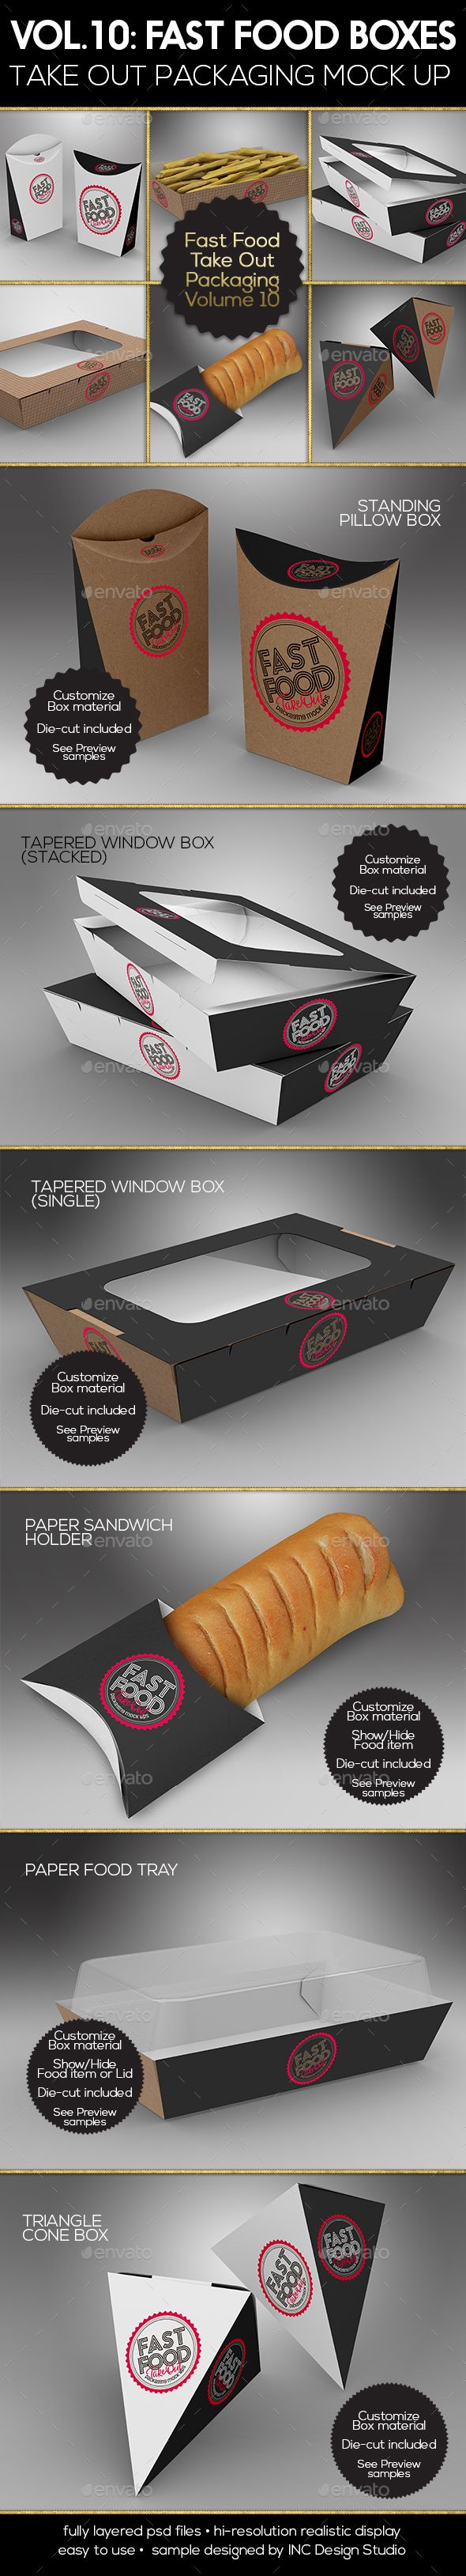 Fast Food Boxes Vol.10:Take Out Packaging Mock Ups — Photoshop PSD #tray #holder • Available here → https://graphicriver.net/item/fast-food-boxes-vol10take-out-packaging-mock-ups/19417898?ref=pxcr